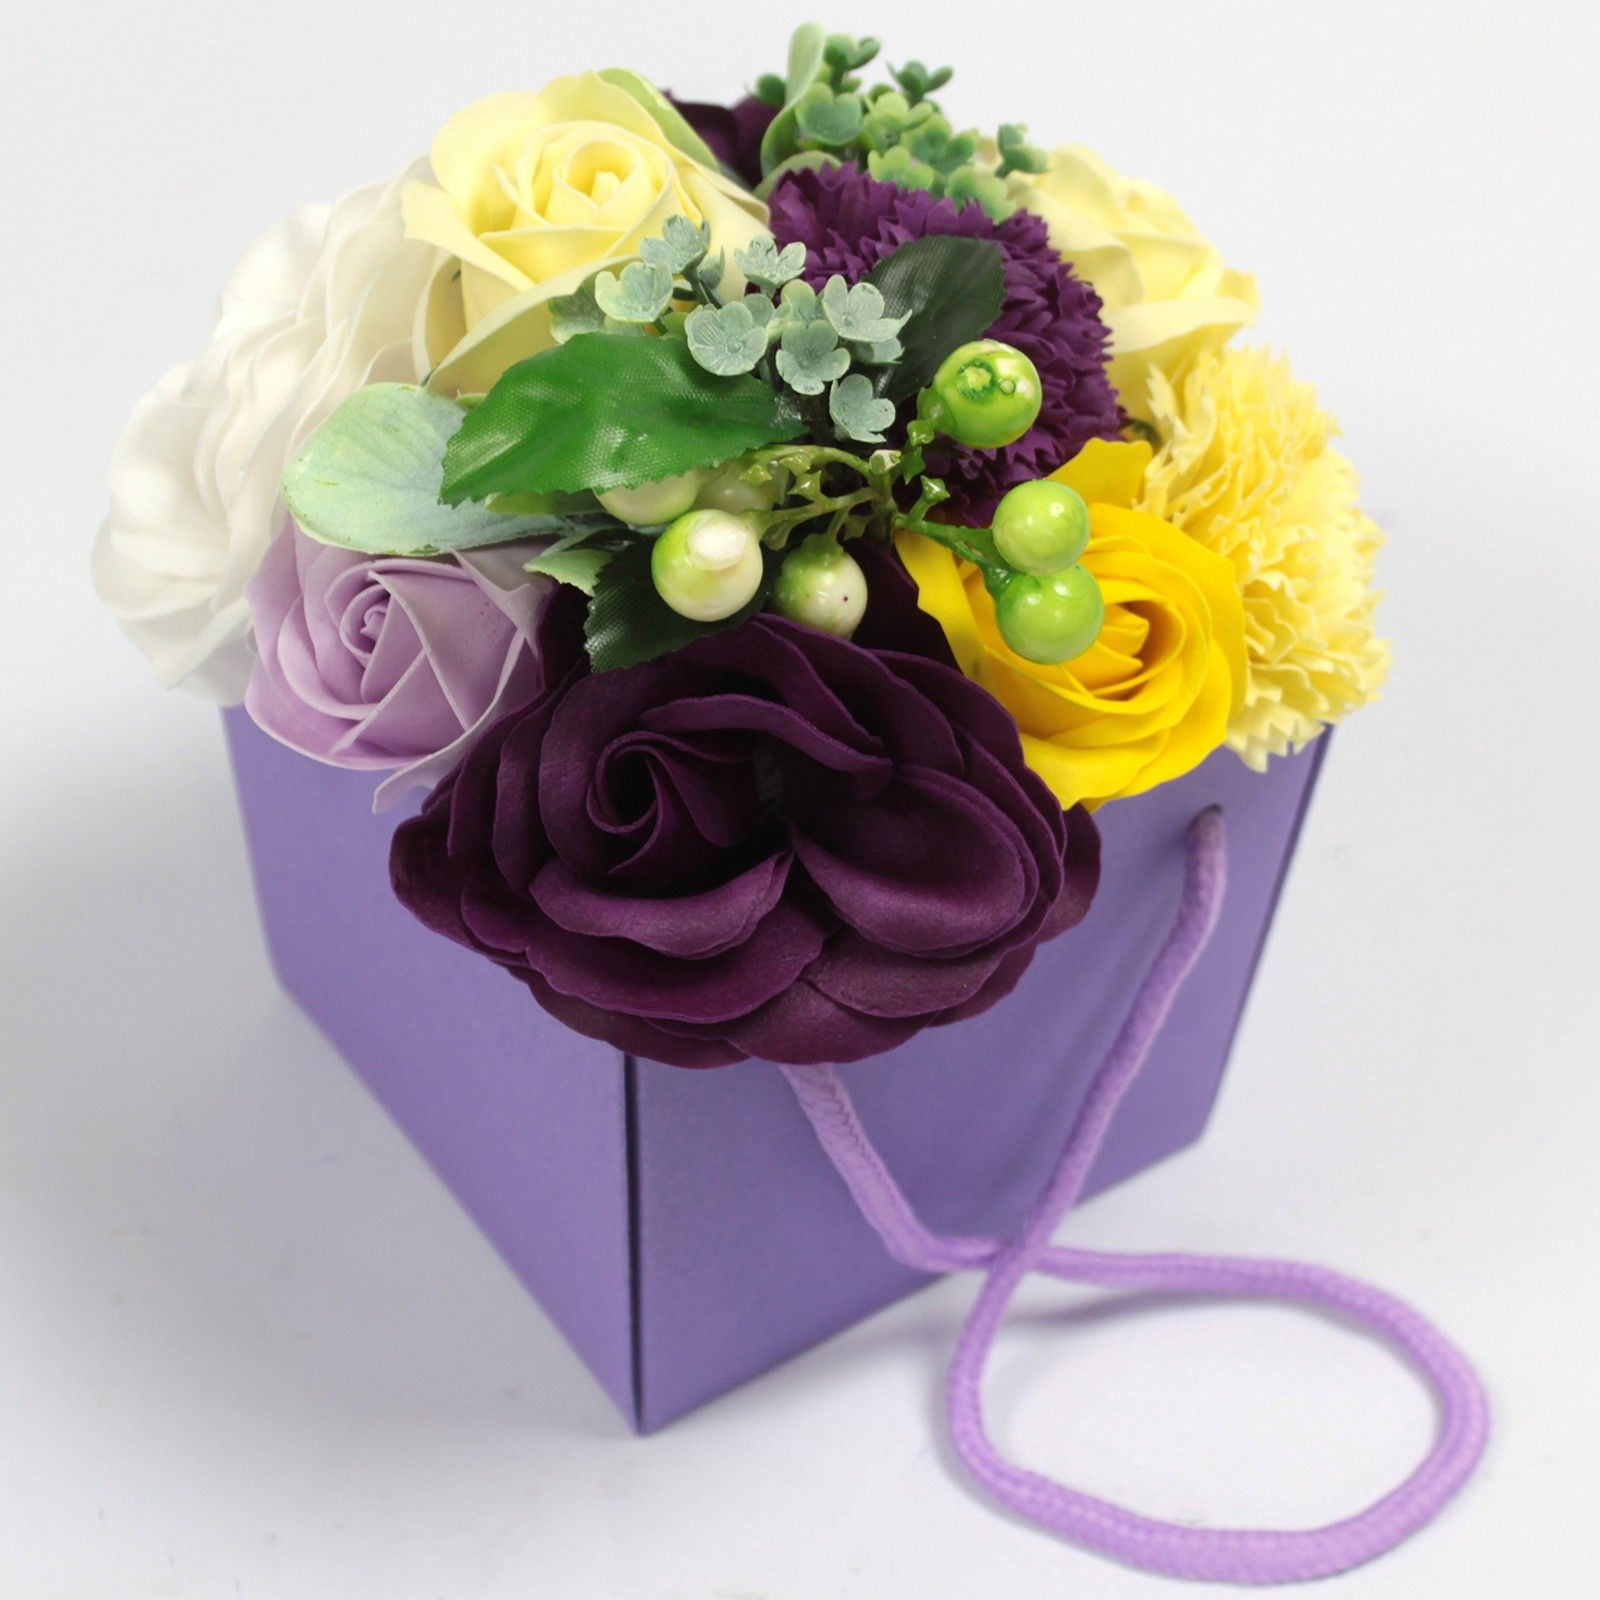 Flower garden soap flower bouquet purple flower garden soap flower bouquet izmirmasajfo Images